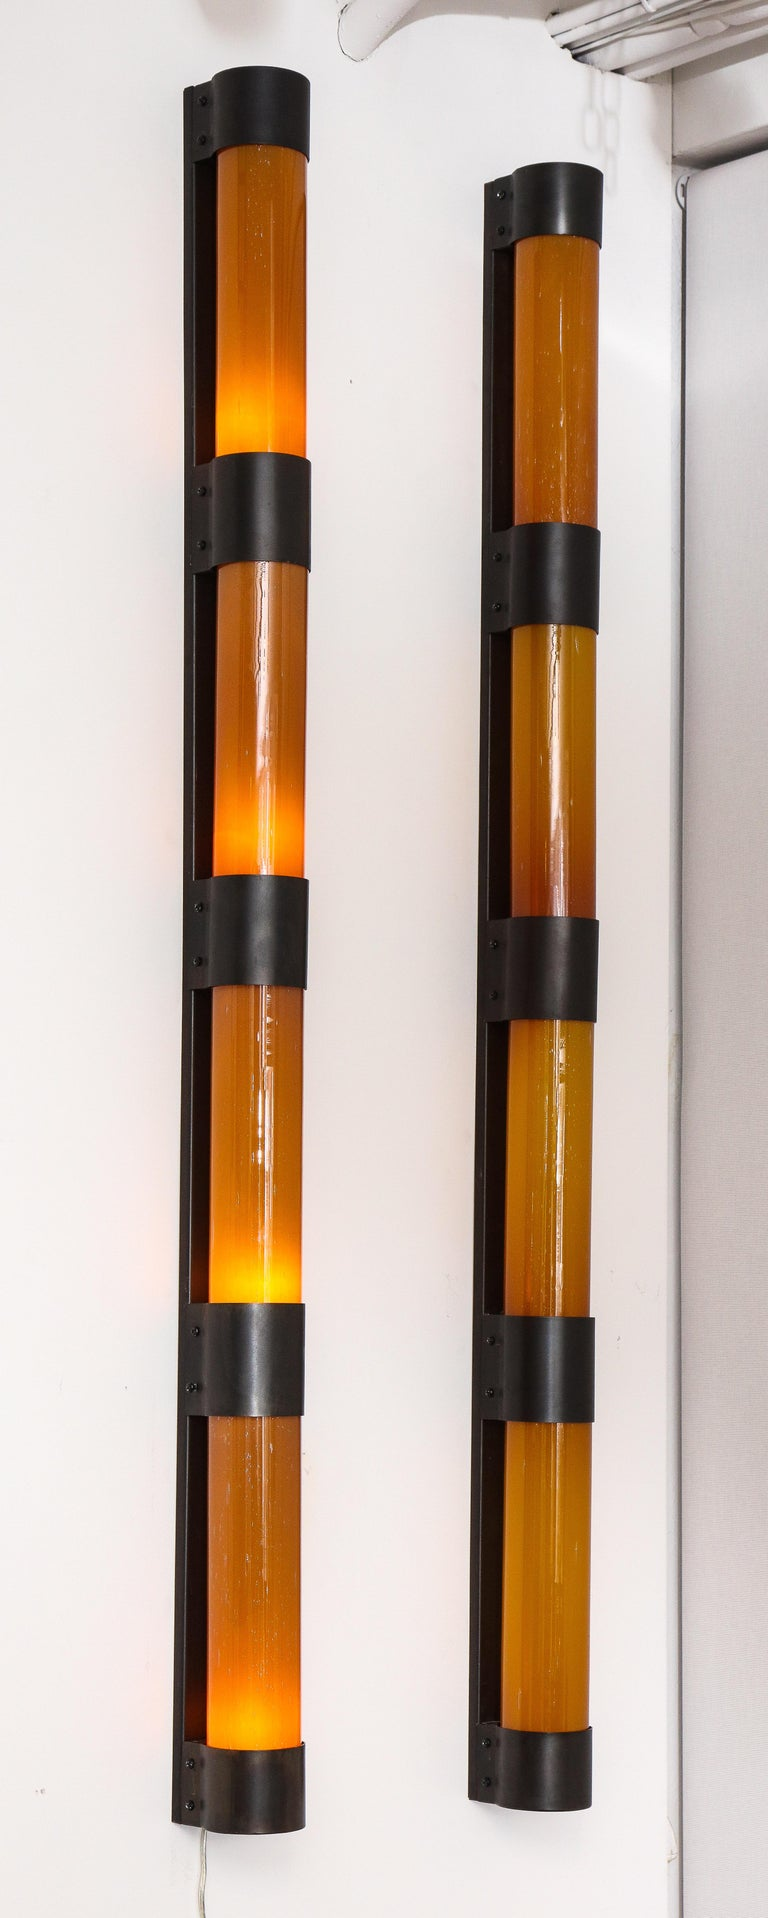 American Pair of Large Amber Glass Sconces by Savoy Studios, '4 Pairs Available' For Sale